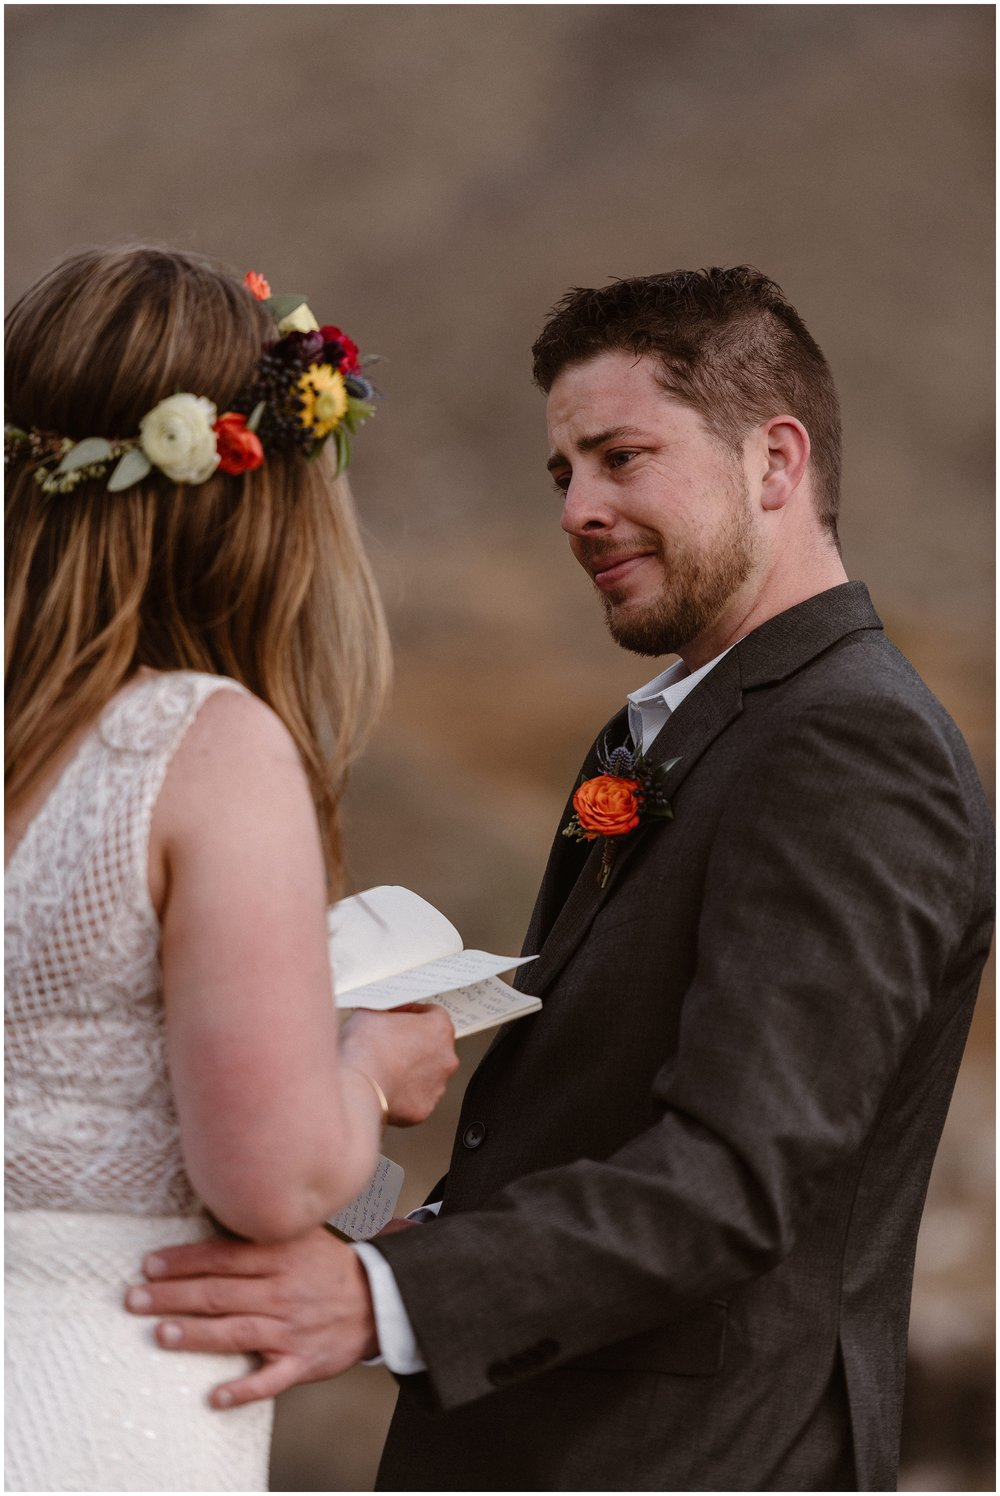 A groom touches his bride on the hip as she reads her vows to him during their elopement ceremony. He looks at her, holding back tears, as he listens to her during their small simple wedding.